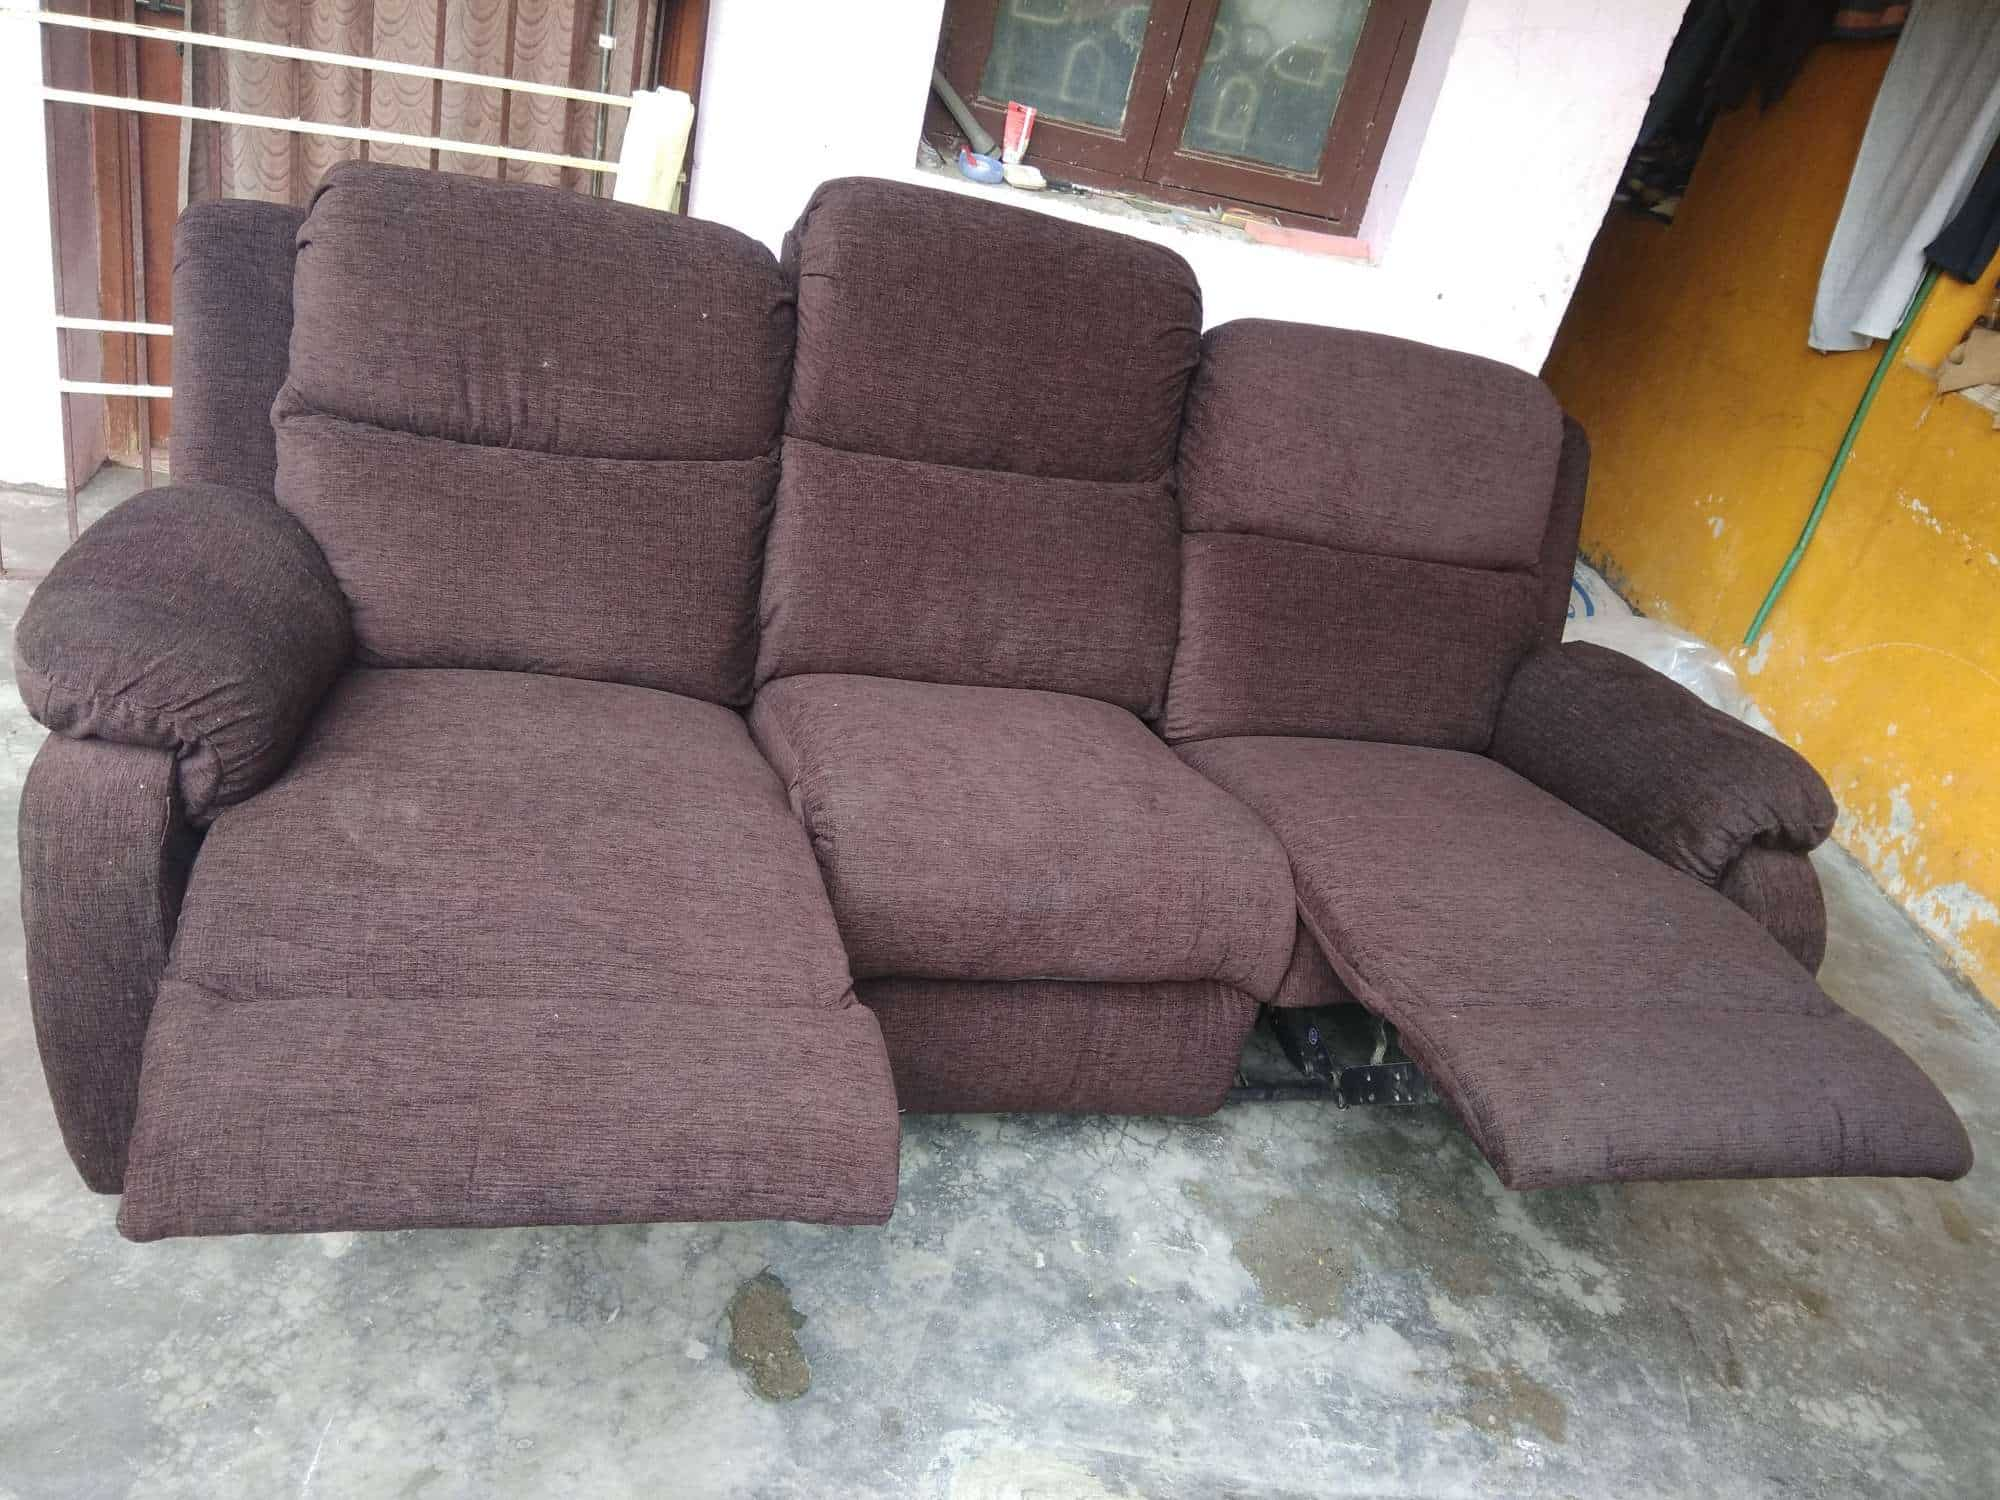 Recliner Sofa Repair Chennai New Bismi Sofa Mart Injambakkam Sofa Set Repair Services In